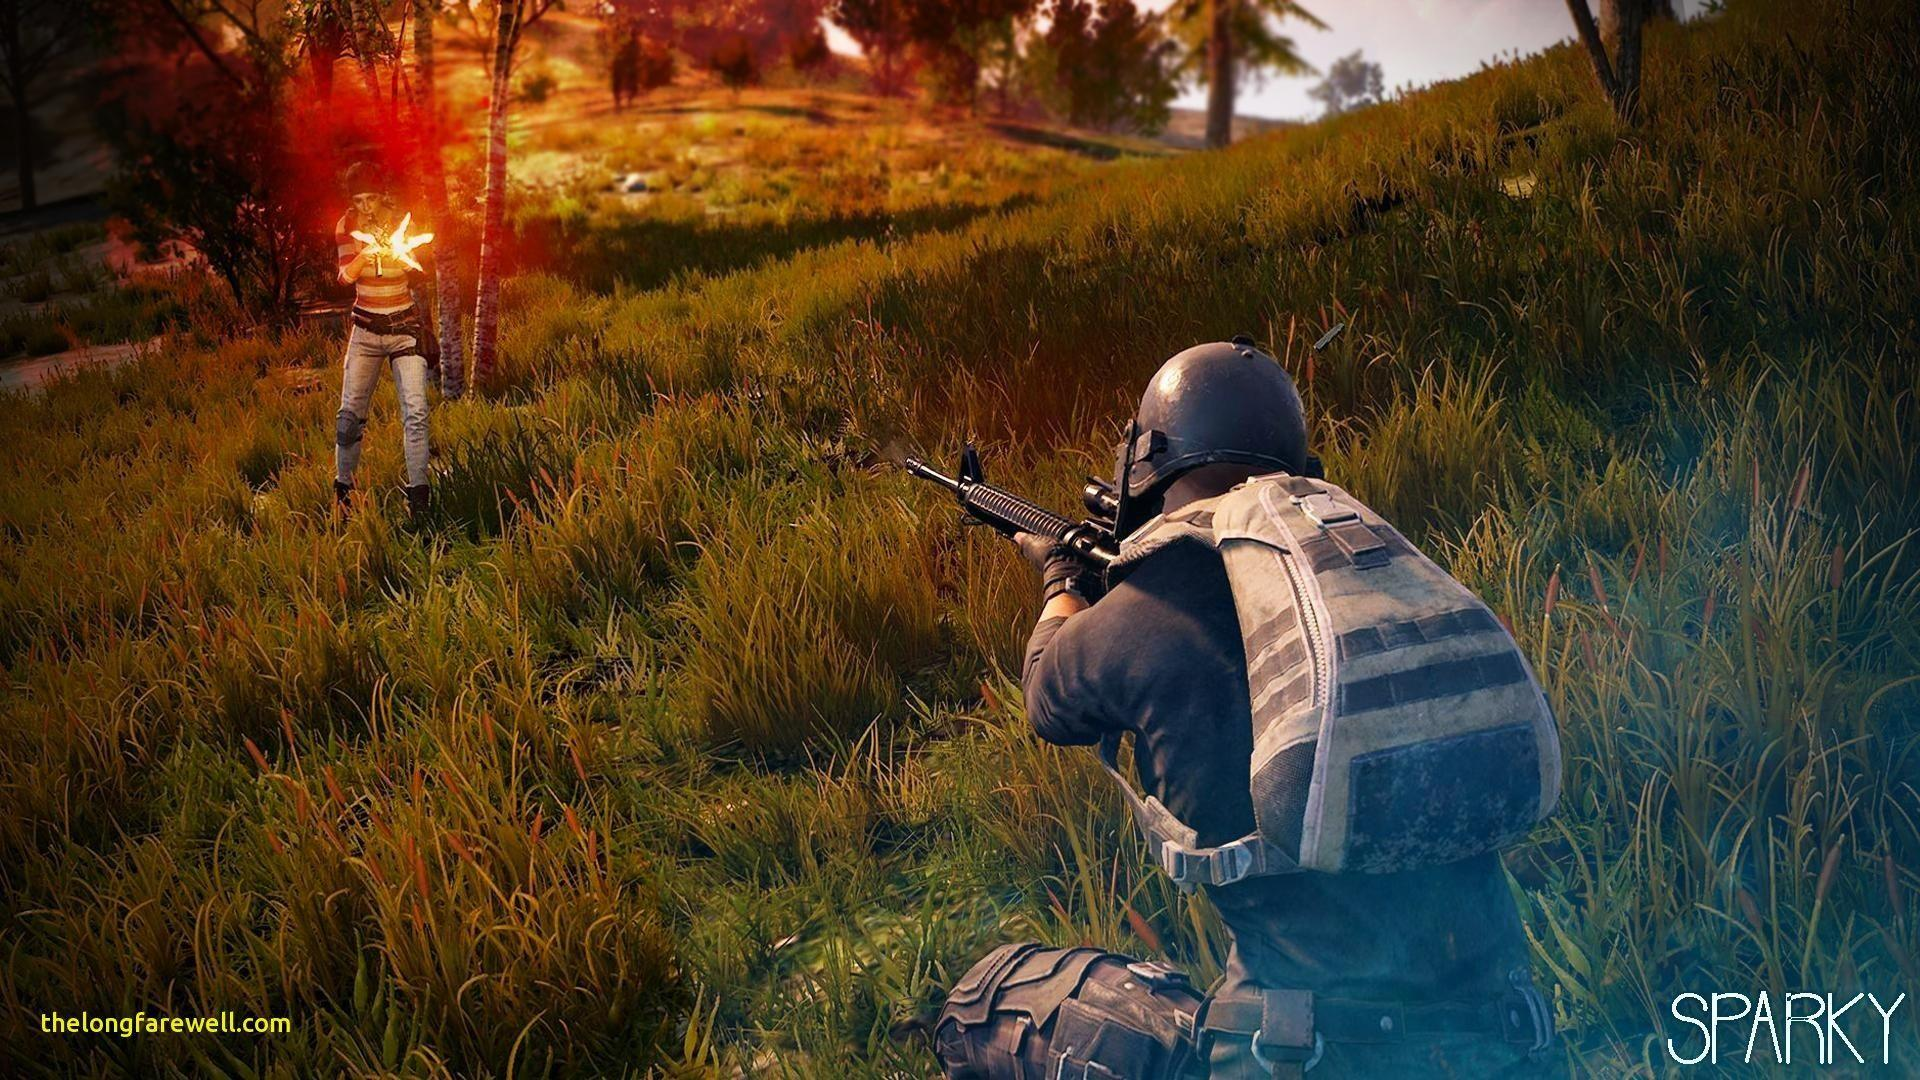 1920x1080 Pubg Characters 4k Laptop Full Hd 1080p Hd 4k: PUBG 4K Wallpapers